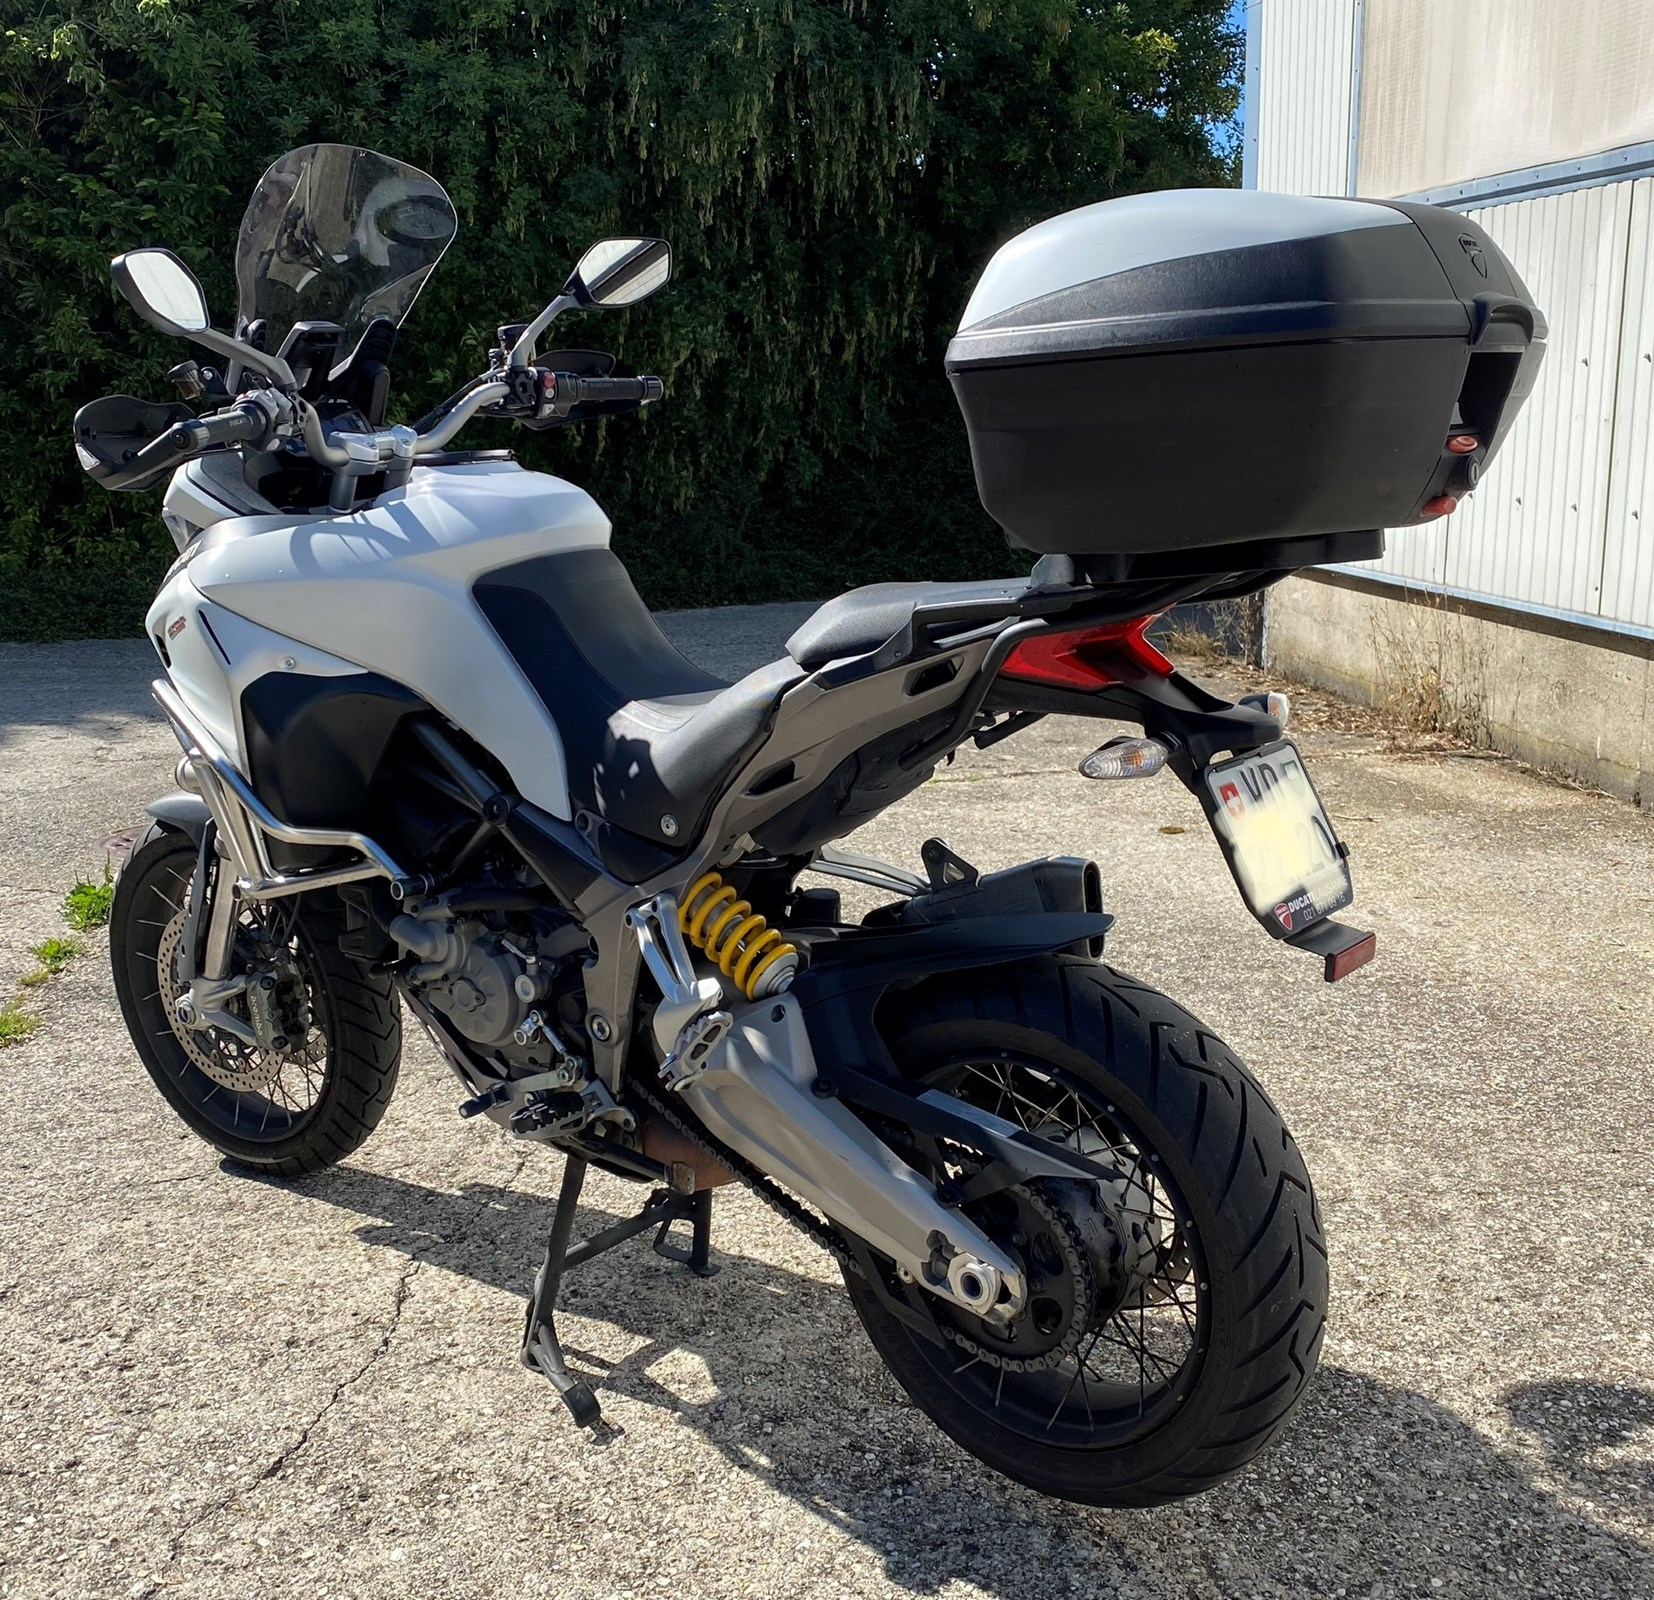 Ducati 1200 Multistrada Enduro Touring ABS